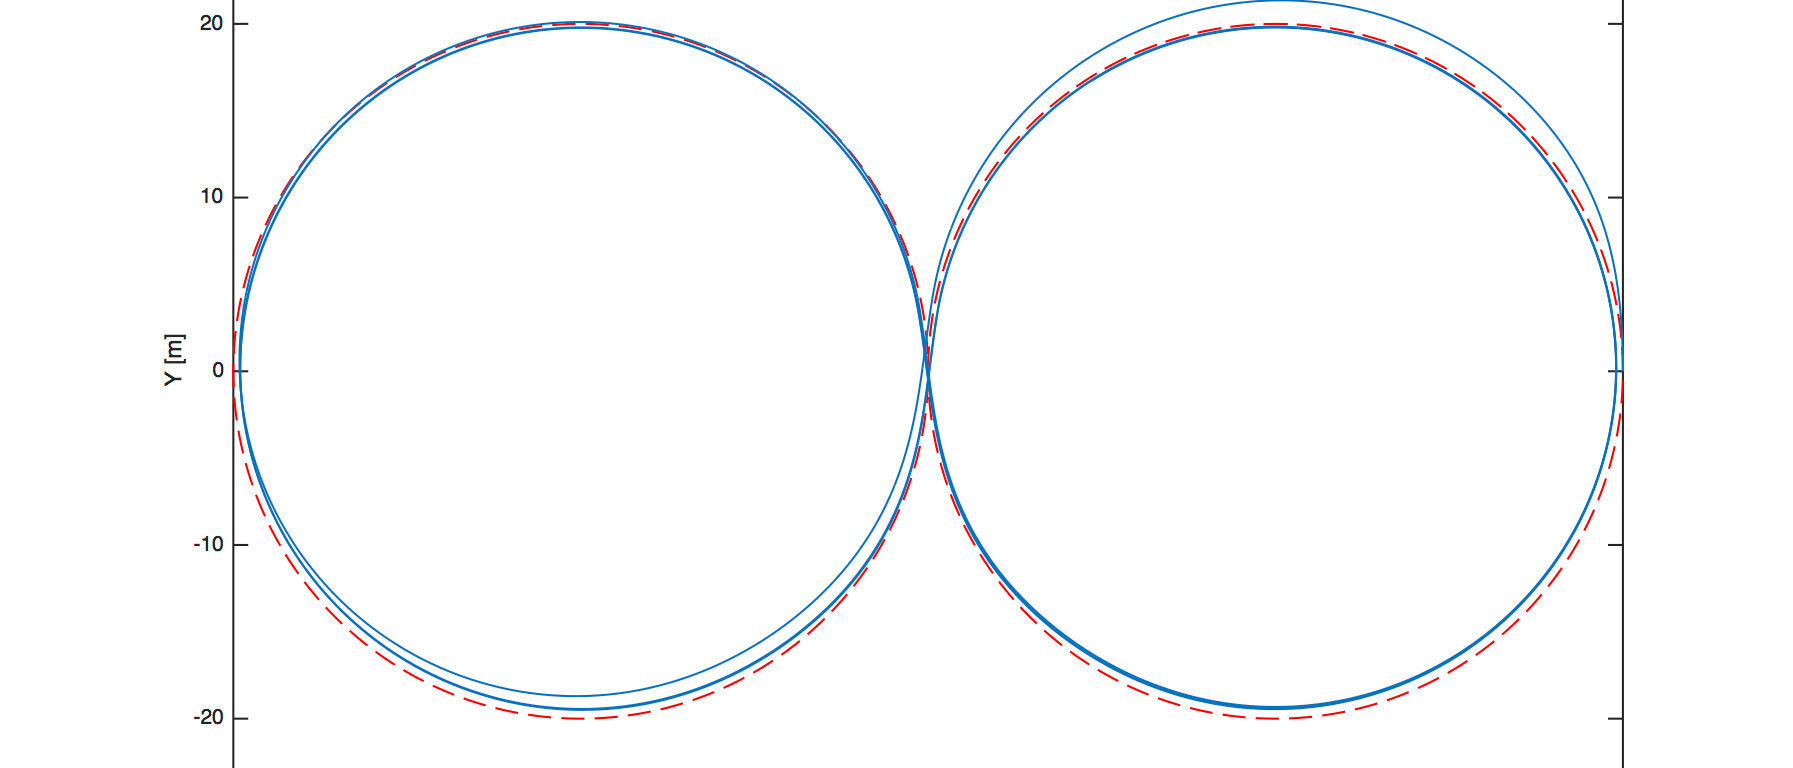 Desired vs. actual path of a vehicle going around a radius 20m figure eight.